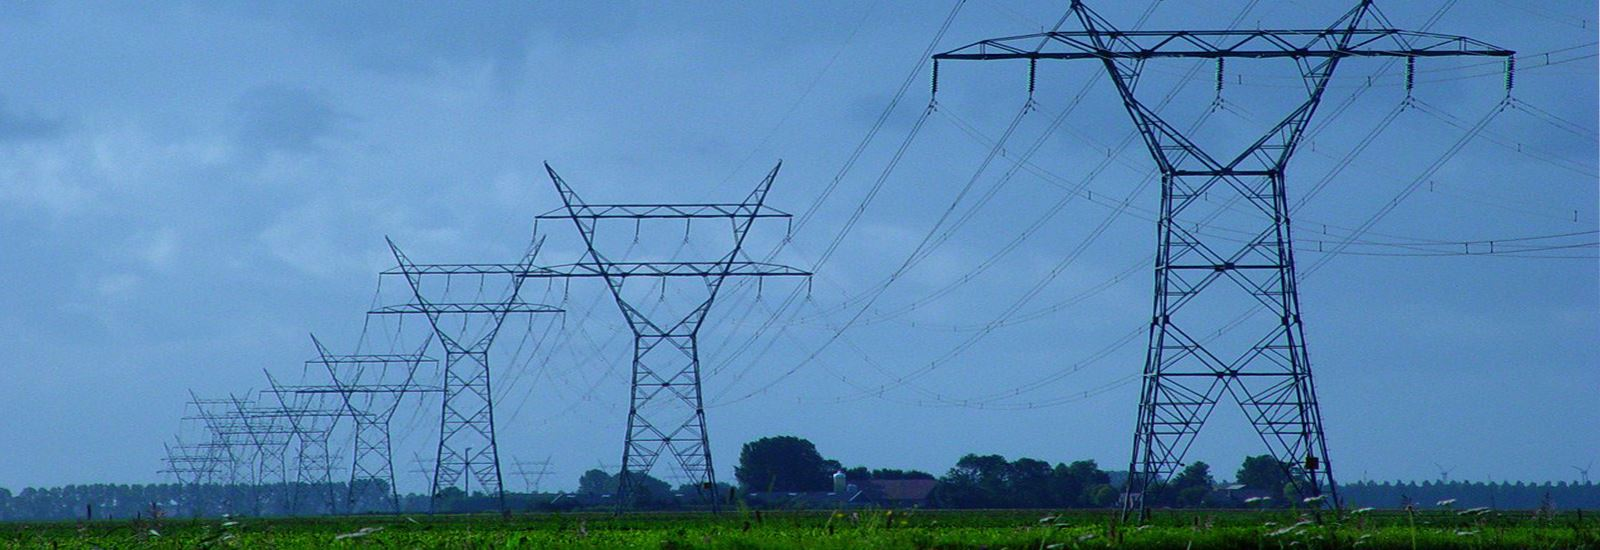 High tension transmission lines running through green field with trees